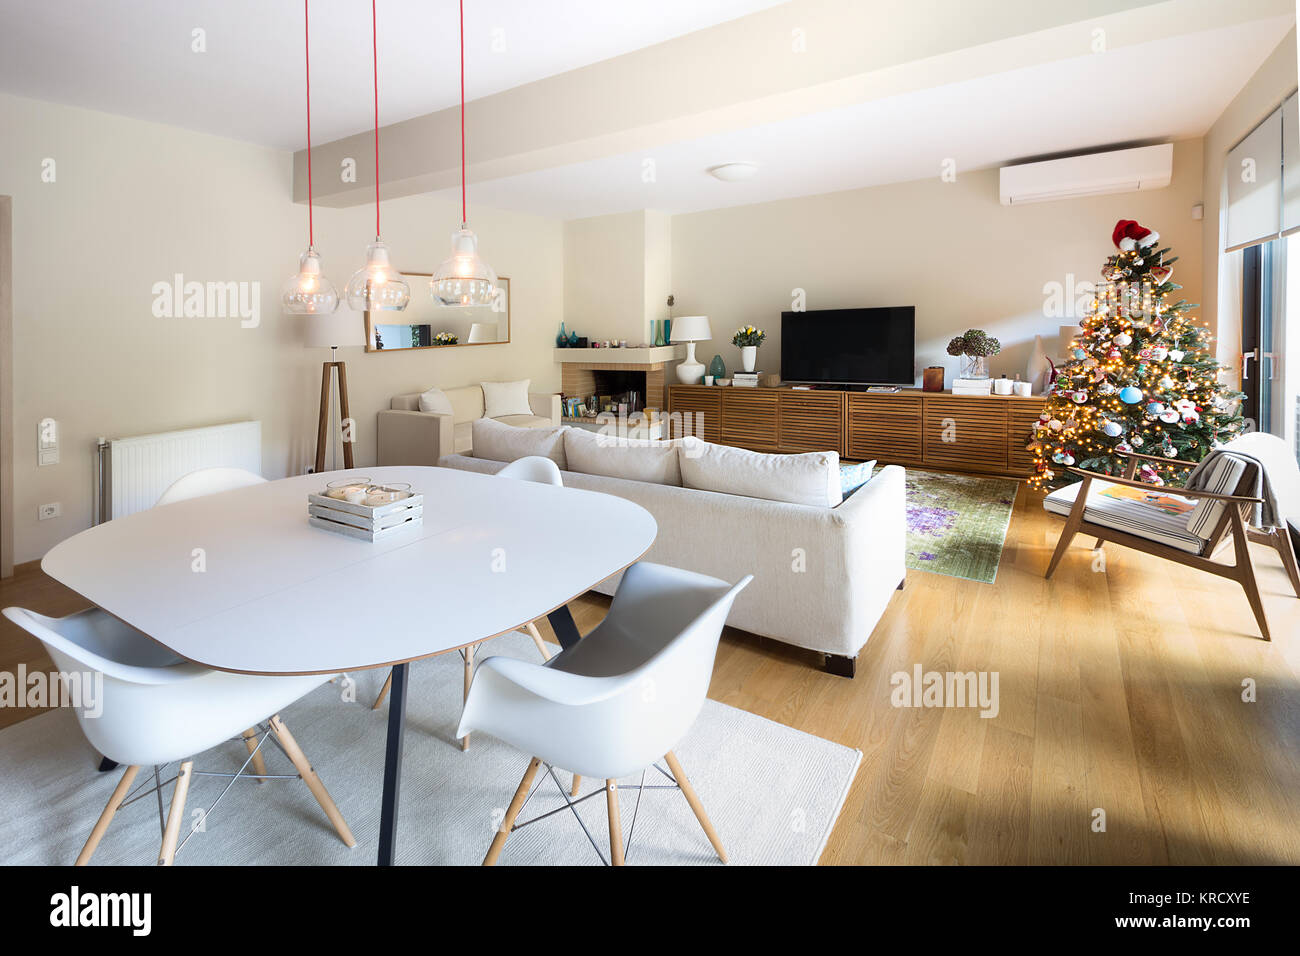 A large living  - dining room with a white table, four white eiffel armchairs, a mid century style wooden arm chair, - Stock Image